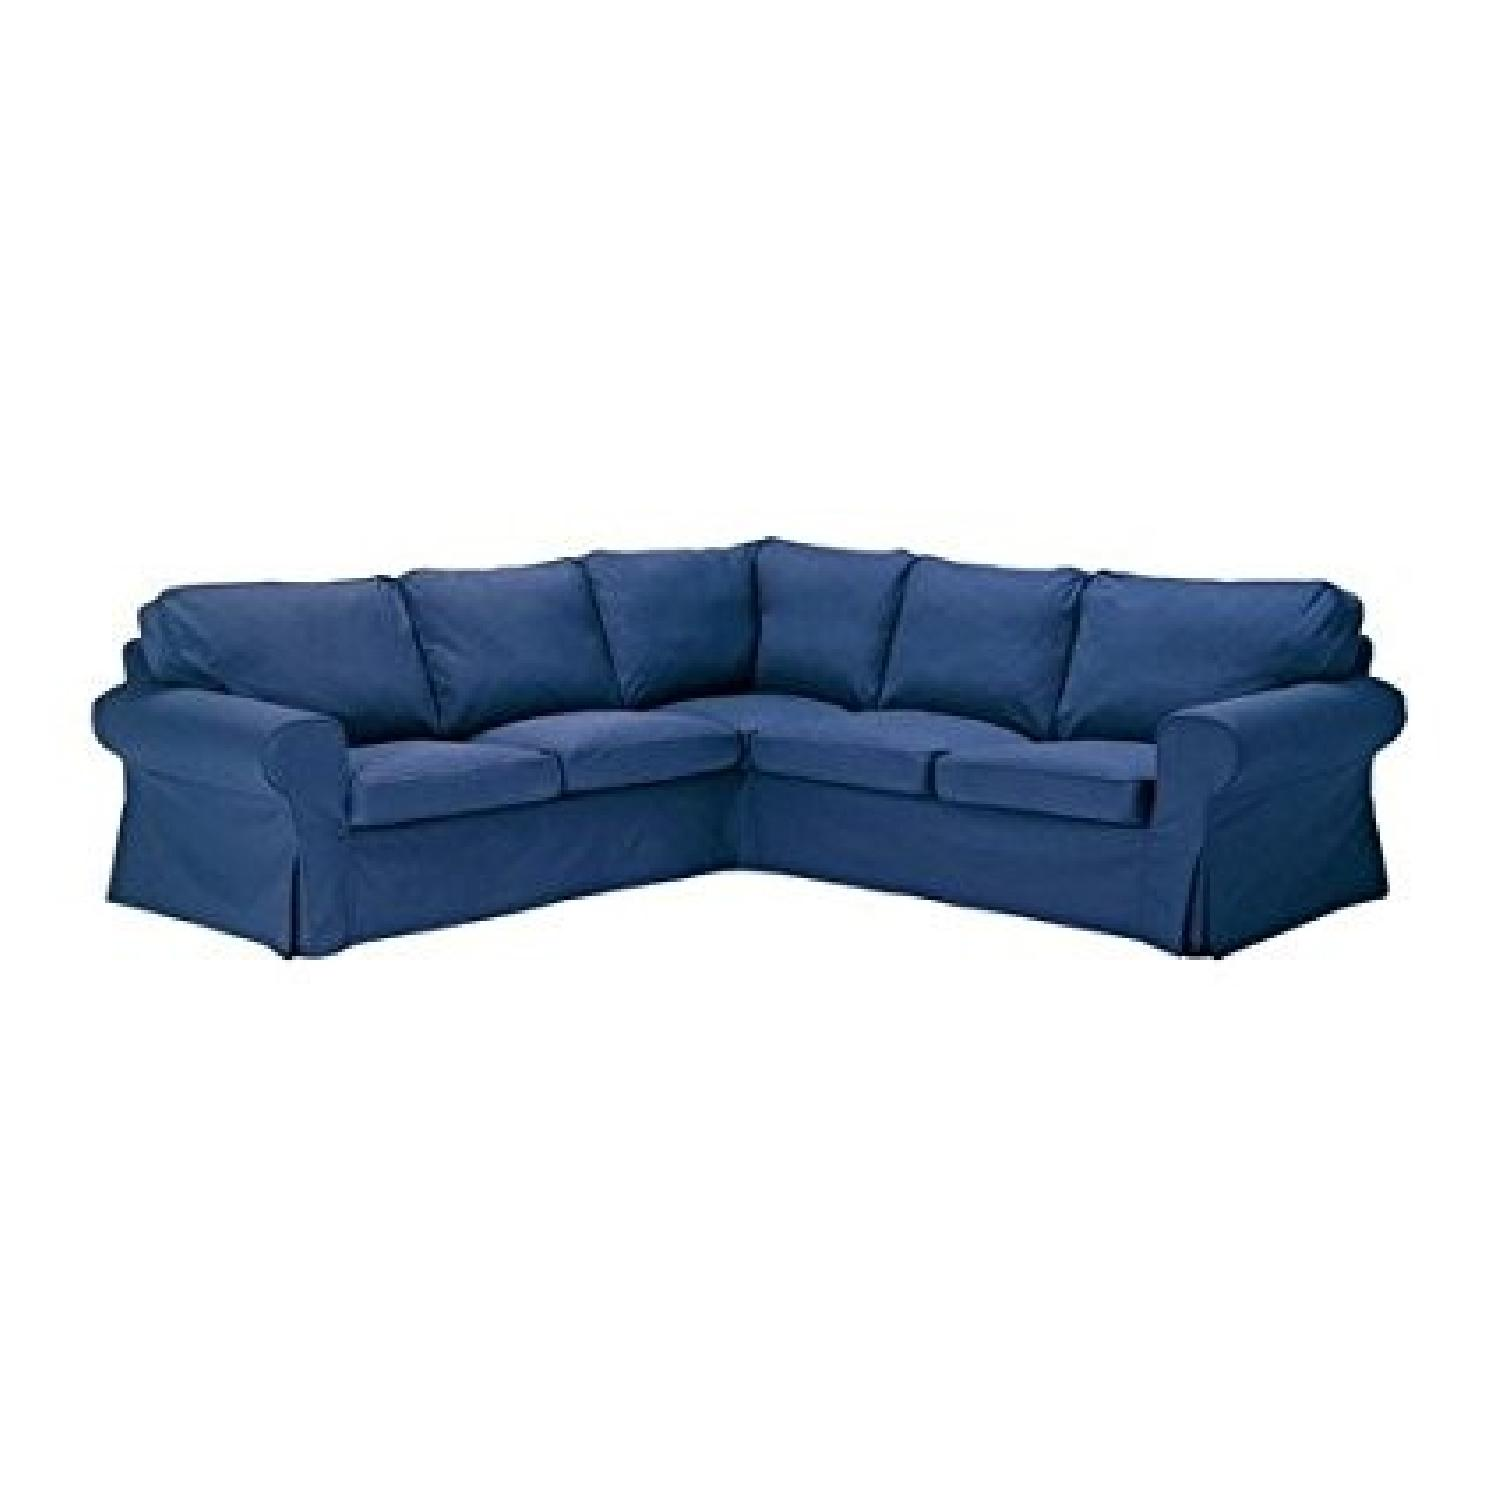 ikea sofa sleeperegarding marvelous of bed couch full furniture sectional design ideas size withecliner